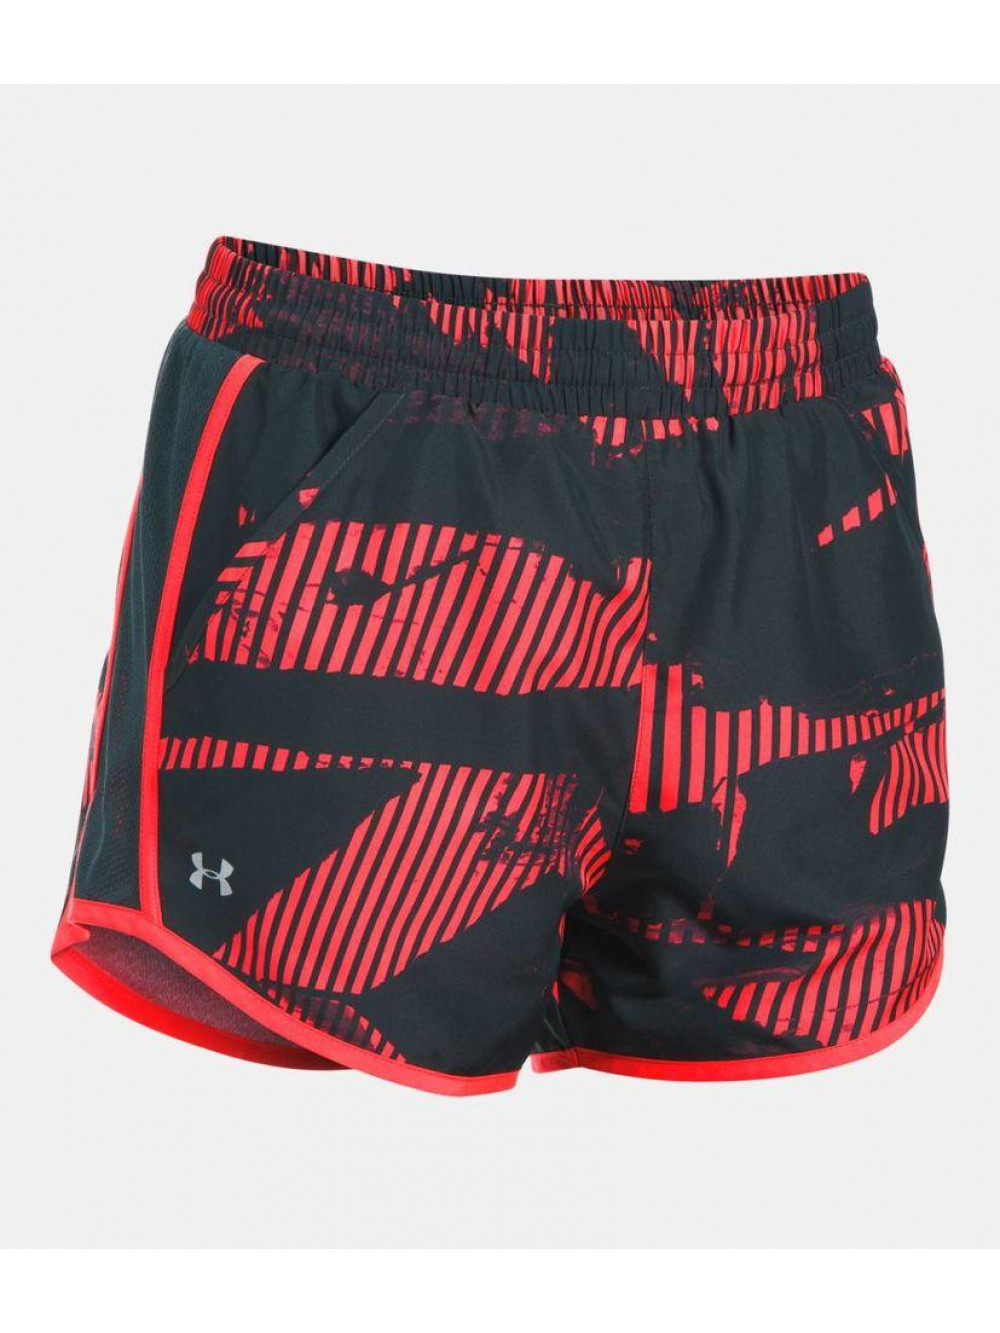 Damen Shorts Under Armour Fly By Printed schwarz-rot